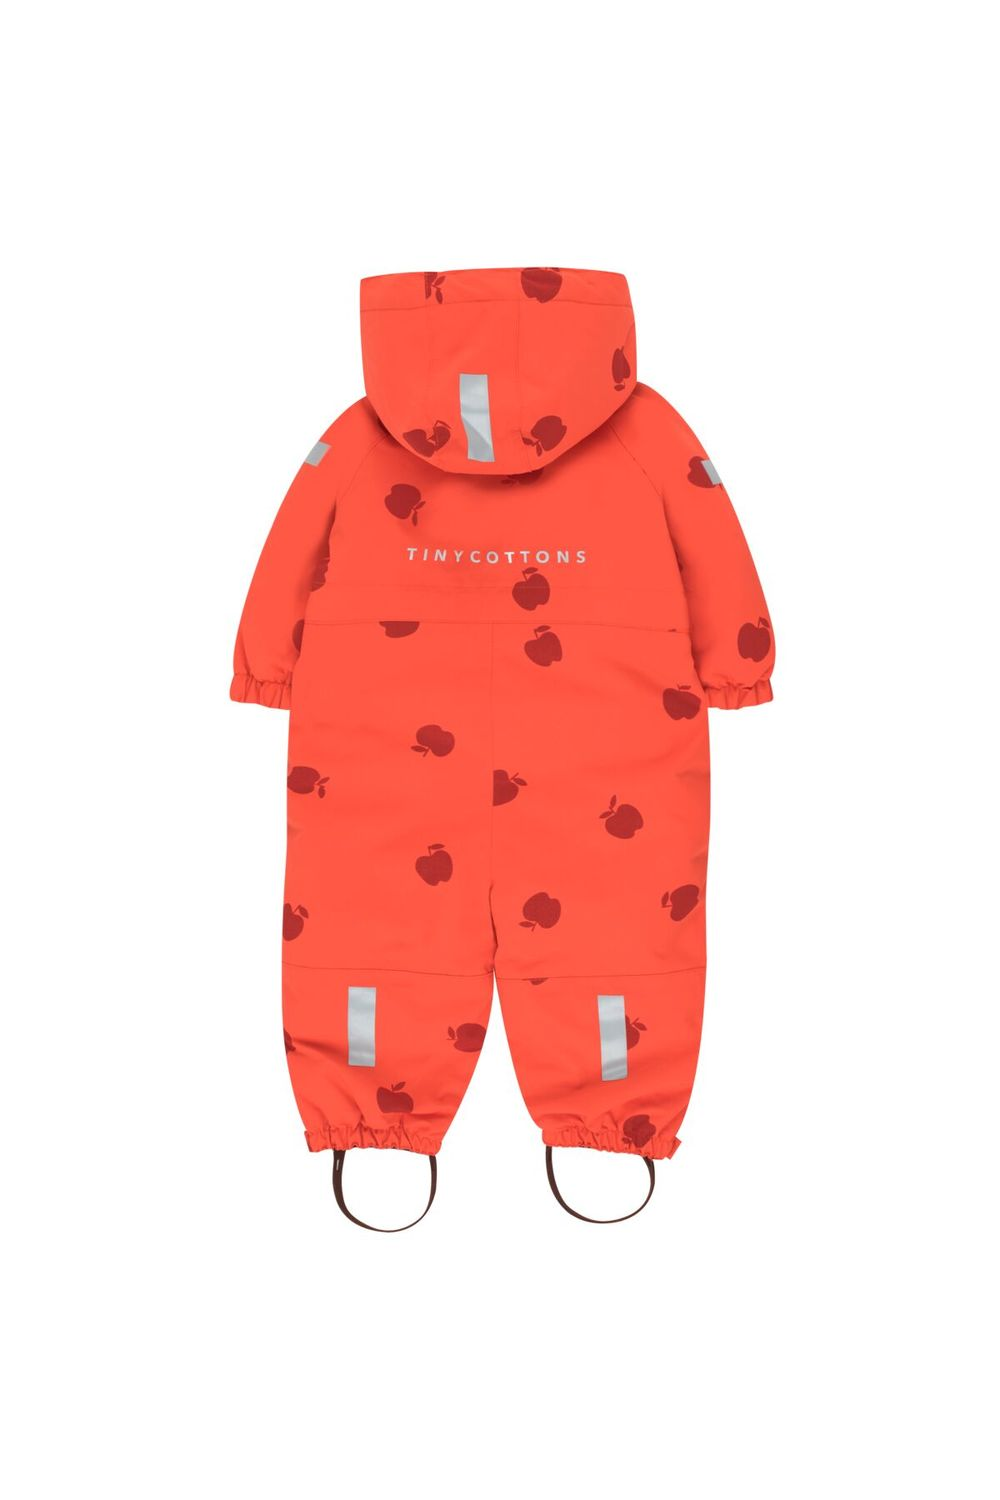 TINY COTTONS APPLES SNOW ONEPIECE, RED